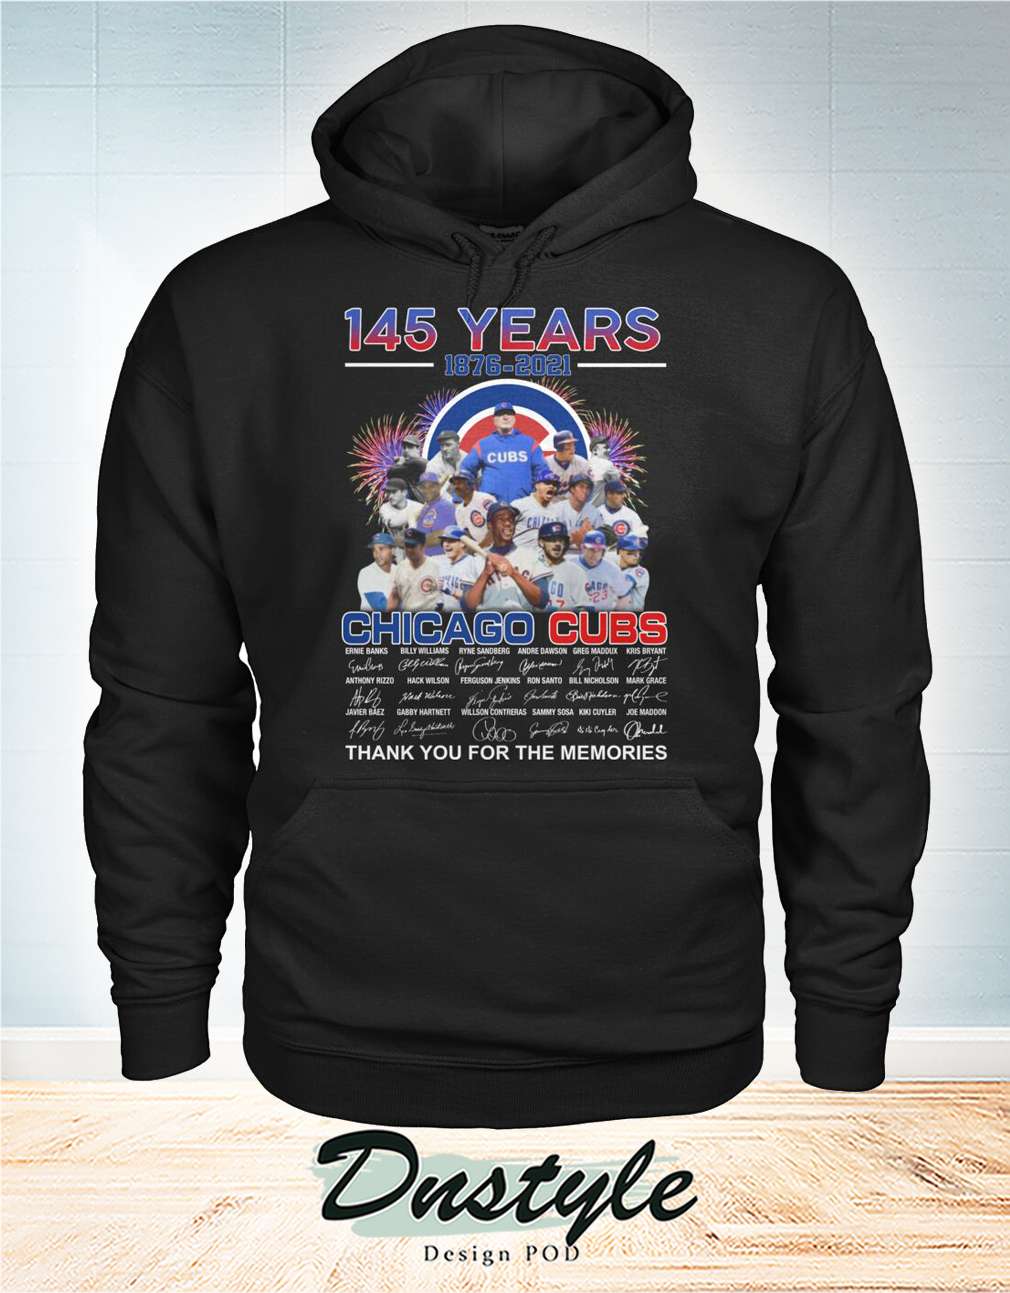 Chicago cubs 145 years signature thank you for the memories hoodie